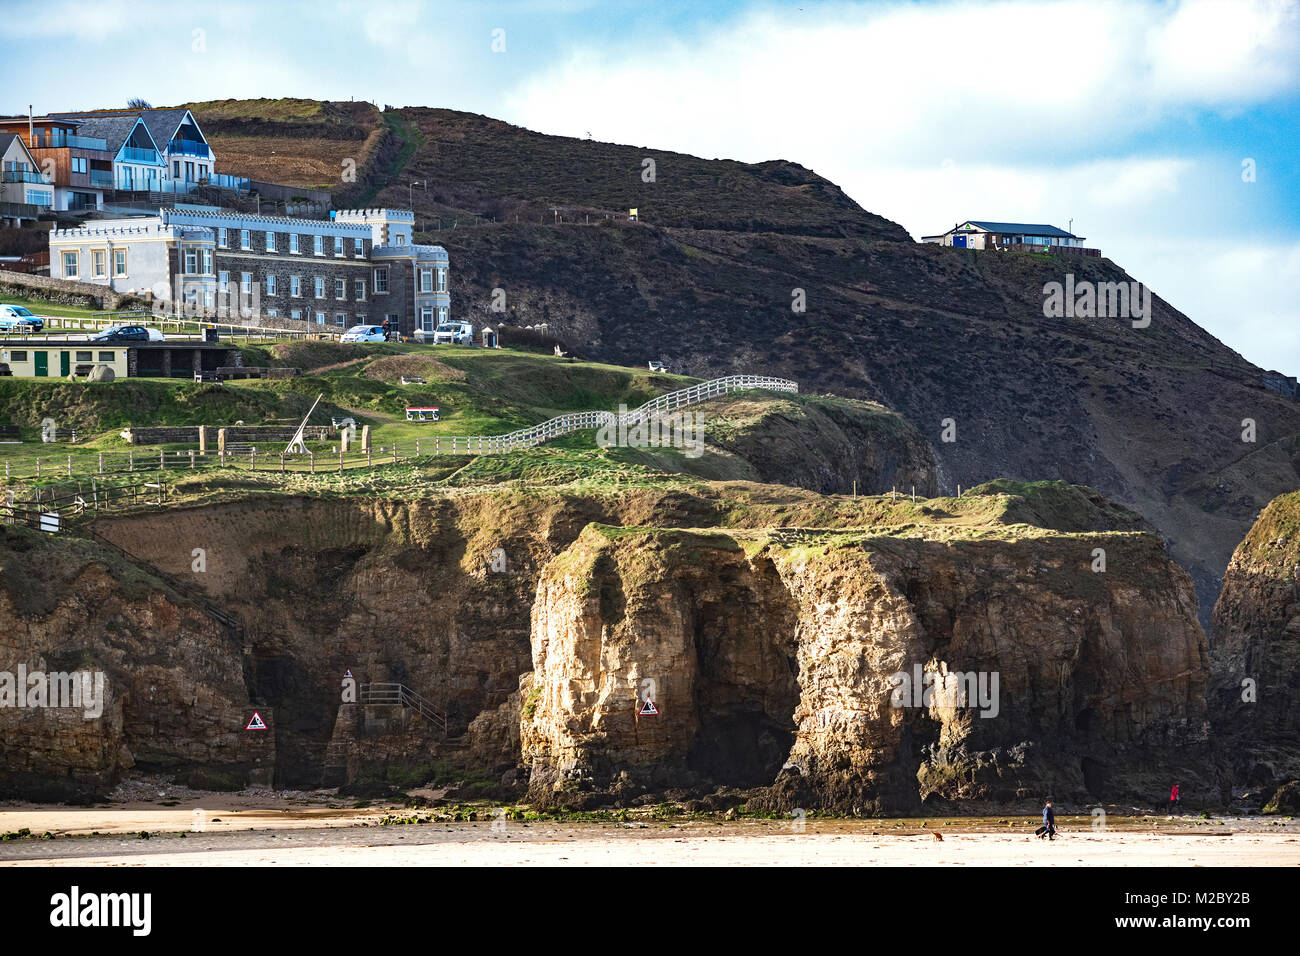 hotels and holiday apartments, on cliffs above the  beach at perranporth in cornwall, england, britain, uk. - Stock Image